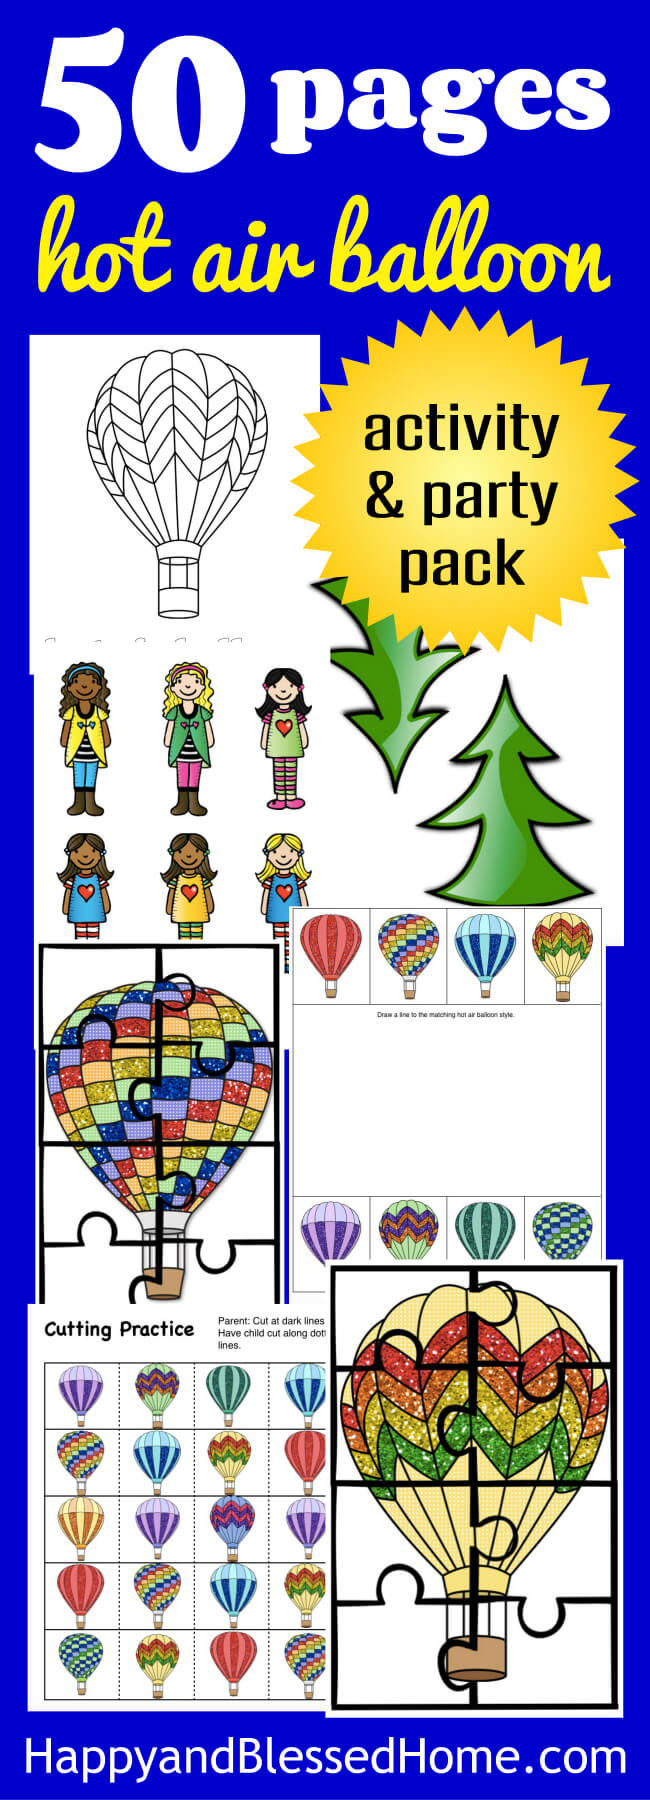 50 Pages of Hot Air Balloon Activities and Party Decorations